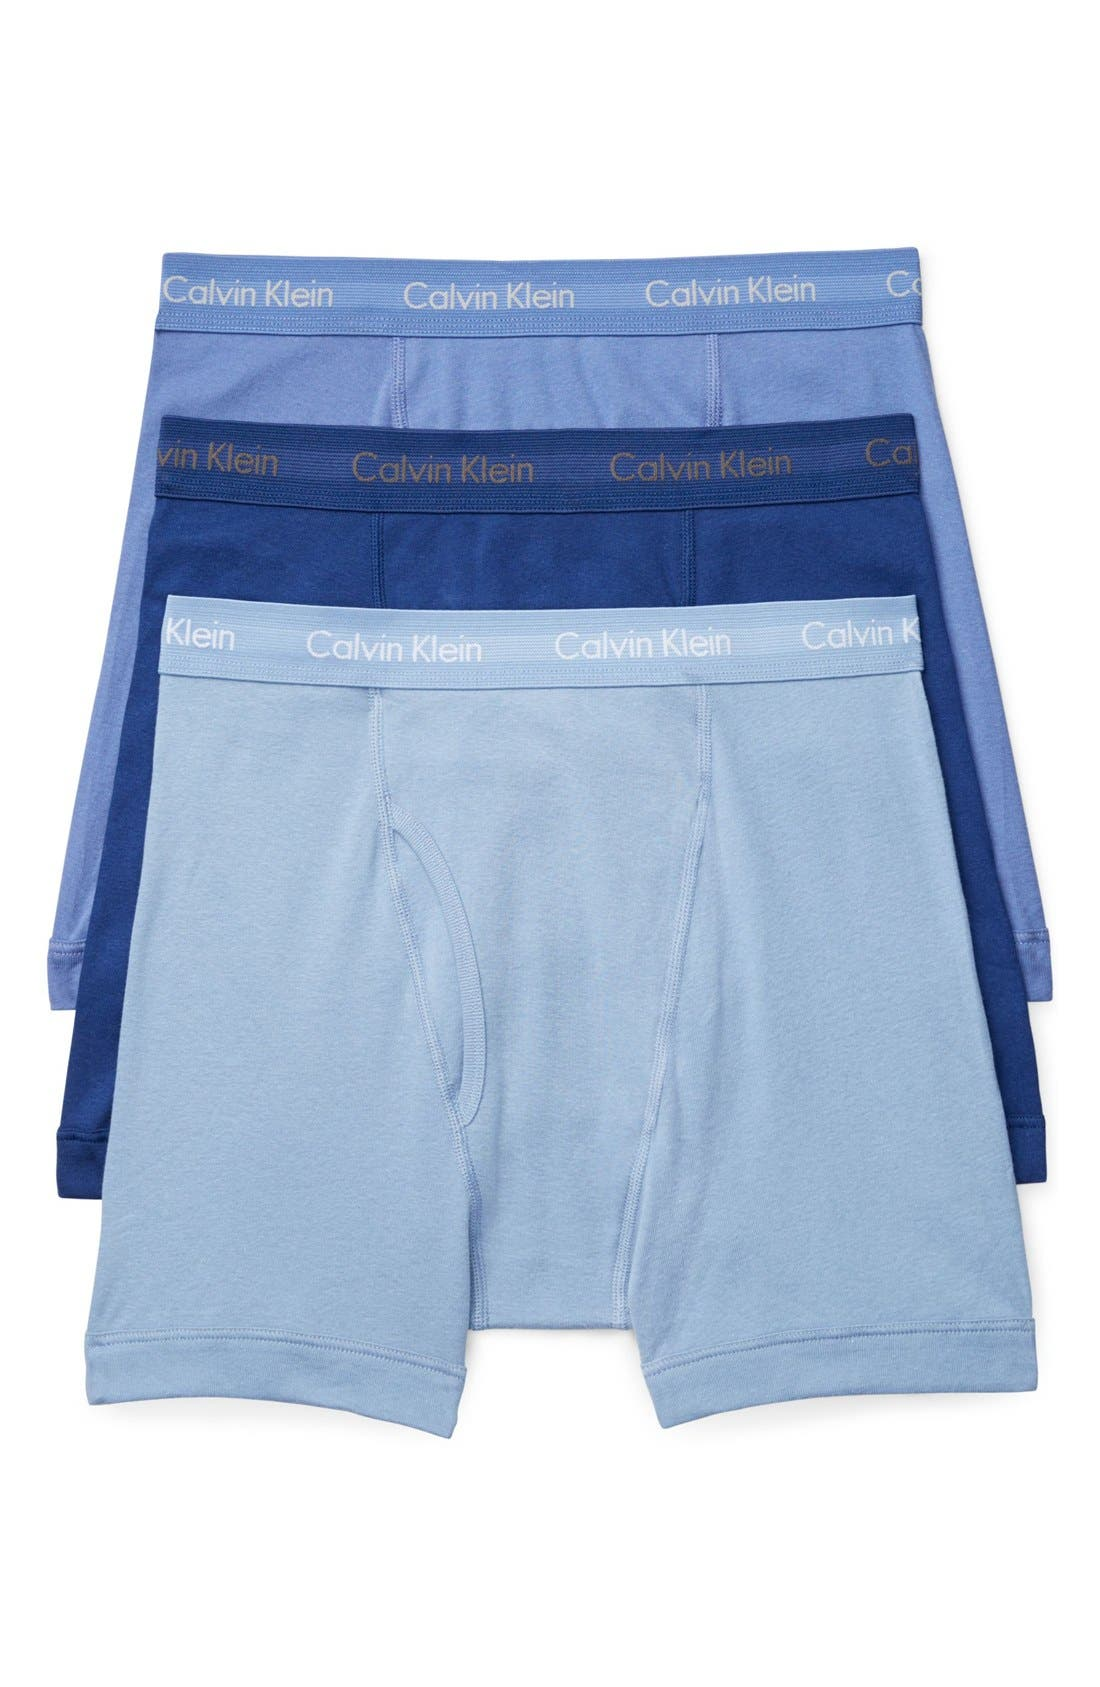 3-Pack Boxer Briefs,                             Main thumbnail 1, color,                             BLUE ASSORTED